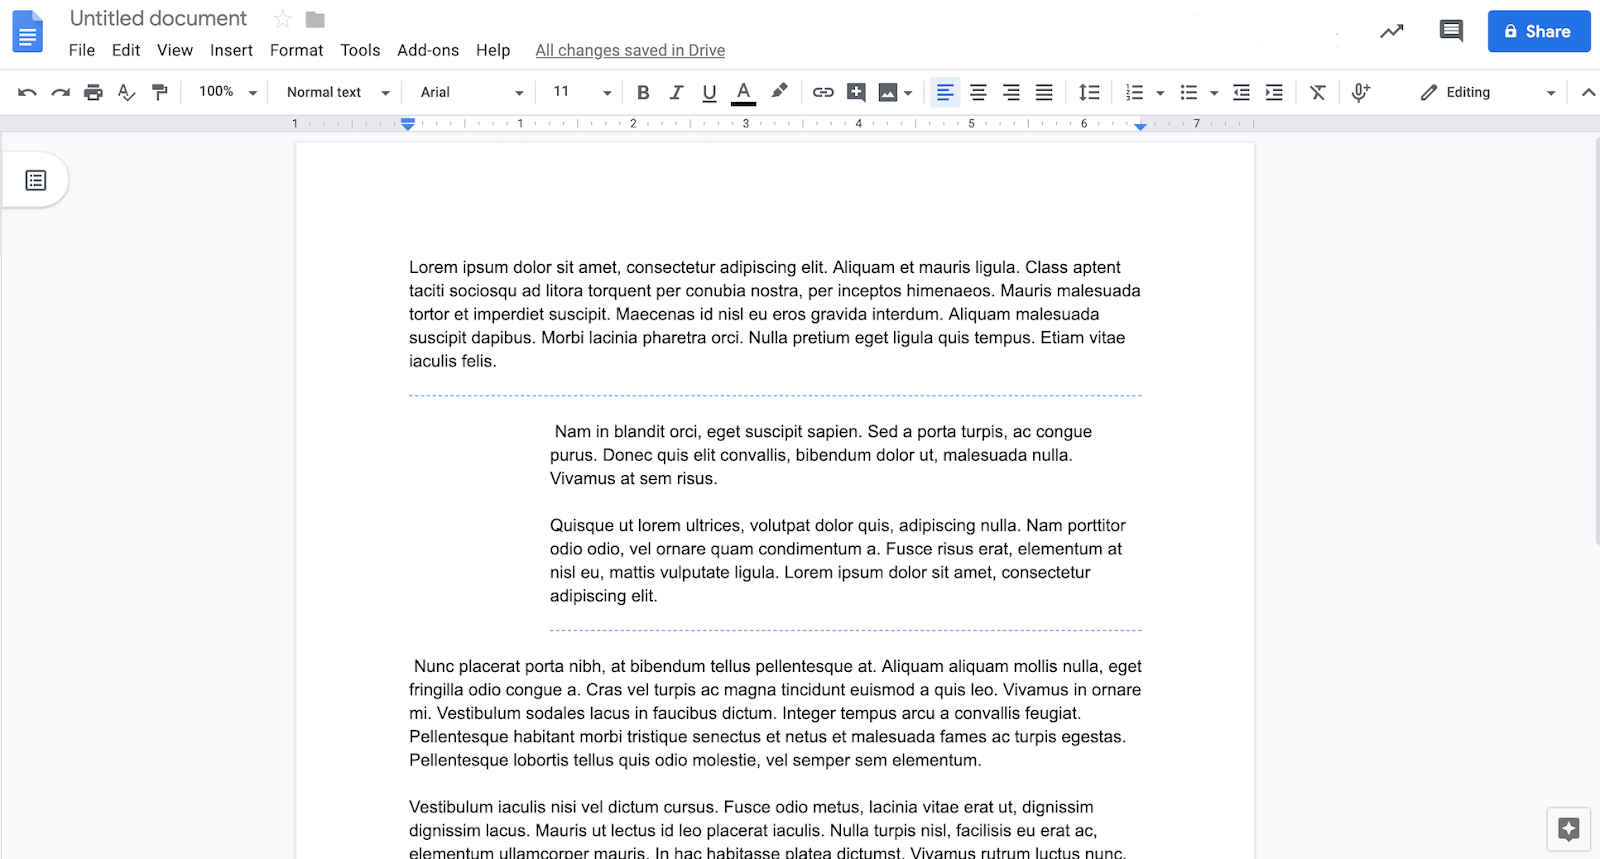 Google Docs finally lets you adjust margins per section and add section breaks